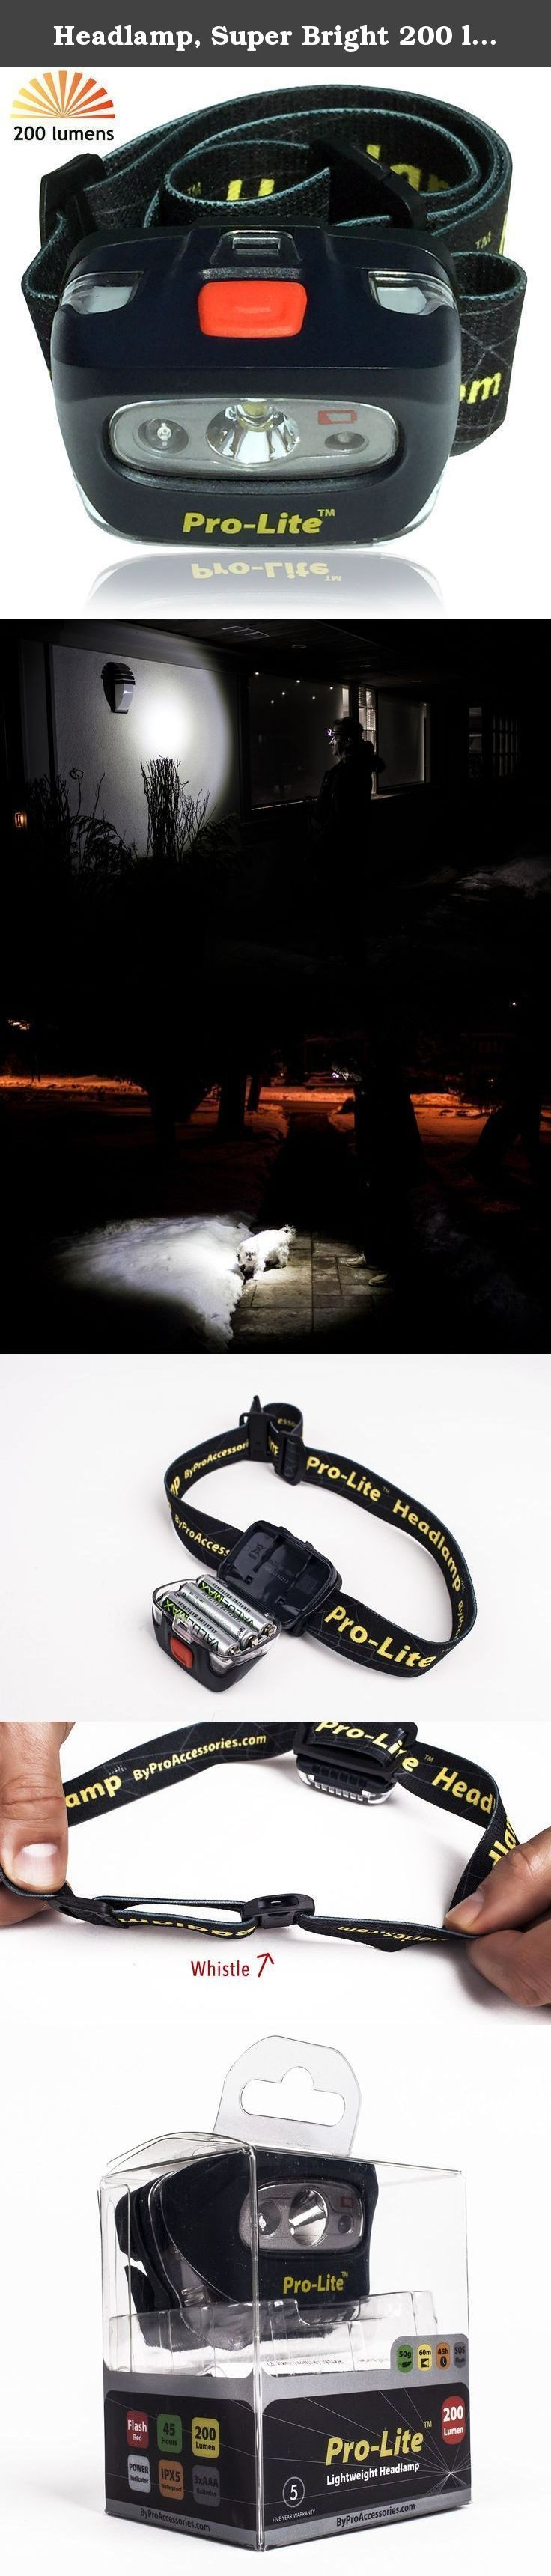 Headlamp, Super Bright 200 lumen LED Headlight. Comfortable with Emergency Whistle & Red Led Strobe light. Waterproof rating IPX5. Low Battery Indicator and 3 AAA's Included. Excellent Gift Idea!. Our Pro-Lite 5 watt 200 lumen LED headlamp with built in EMERGENCY WHISTLE, integrates two colored light sources: One high-output XP-E white LED for long-distance illumination. One red LED for safety--that together provide 5 lighting modes (white modes: economic, medium, maximum. Red modes: slow...